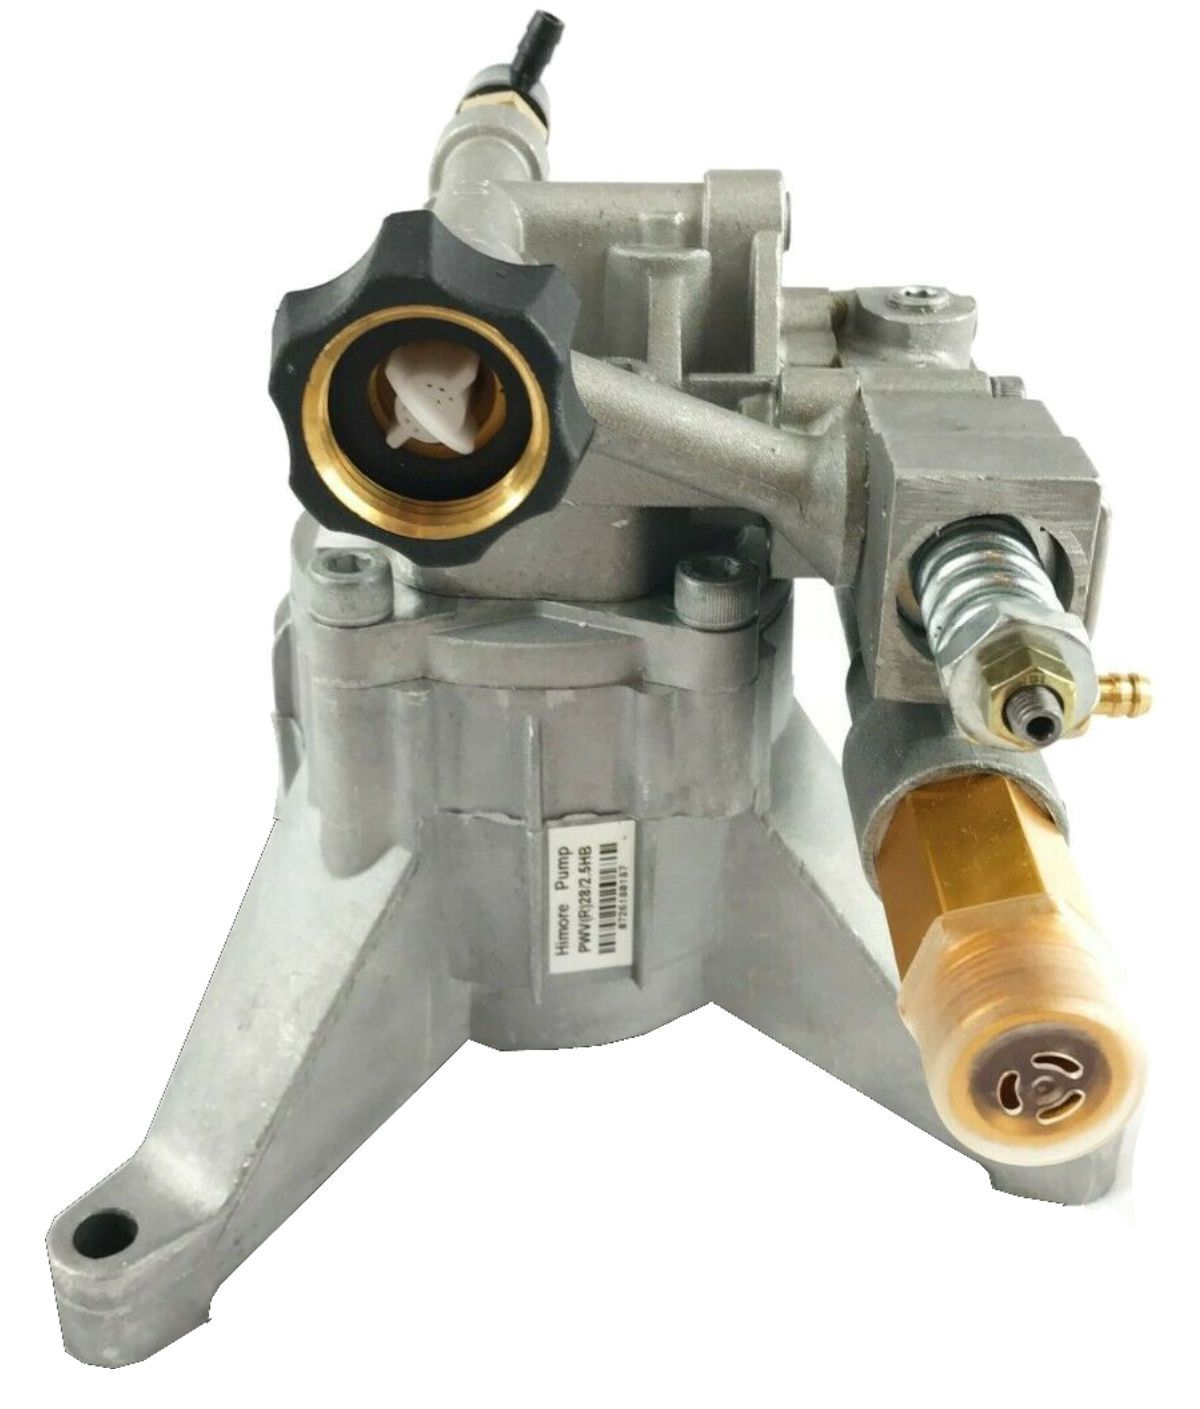 2700 PSI PRESSURE WASHER WATER PUMP Briggs & Stratton 020232 020232-0 - AE-Power